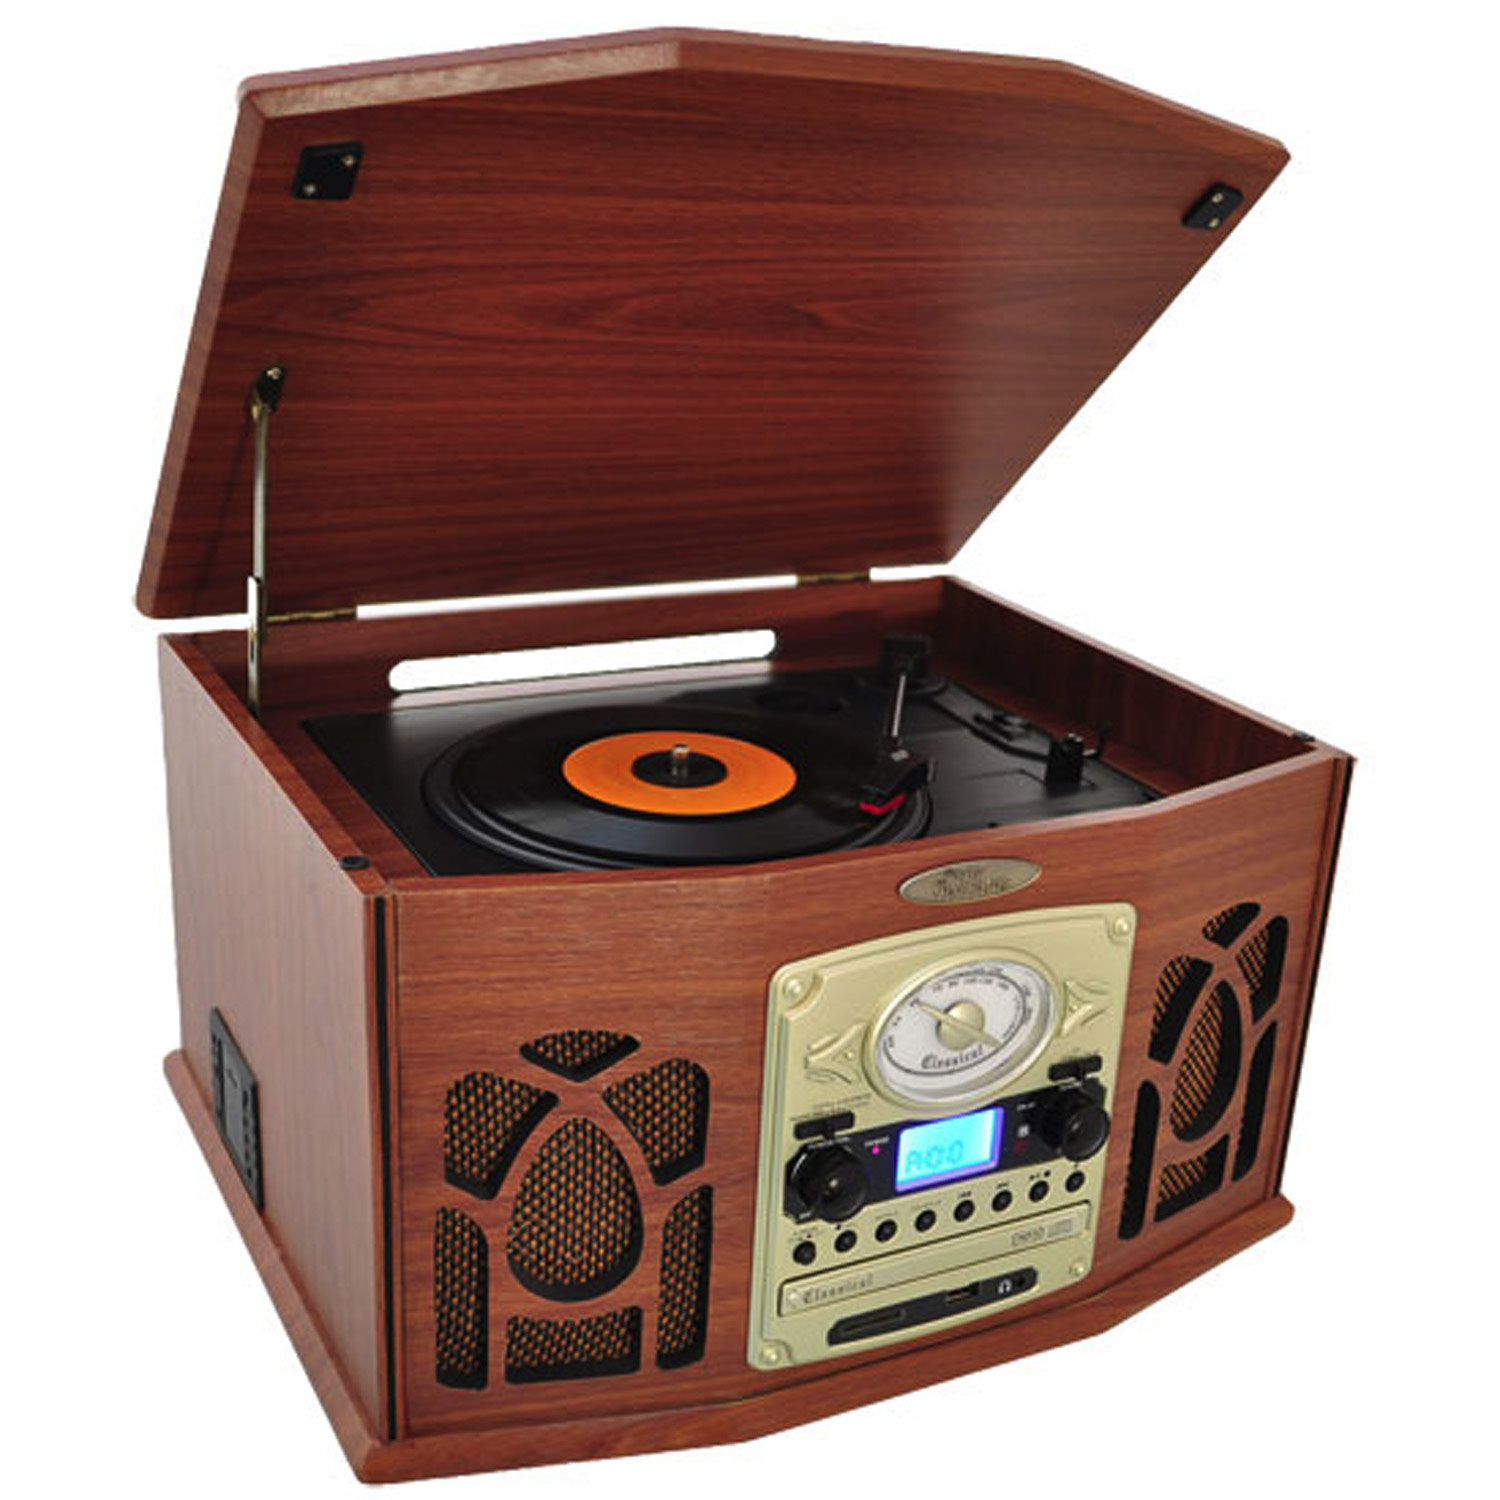 Pyle Pyle Retro Vintage Turntable with CD/MP3/Casette/Radio/USB/SD With Aux-In And Vinyl-to-MP3 Encoding & iPod Player & iPod Player PartNumber: 018V006288796000P KsnValue: 018V006288796000 MfgPartNumber: 97079775M